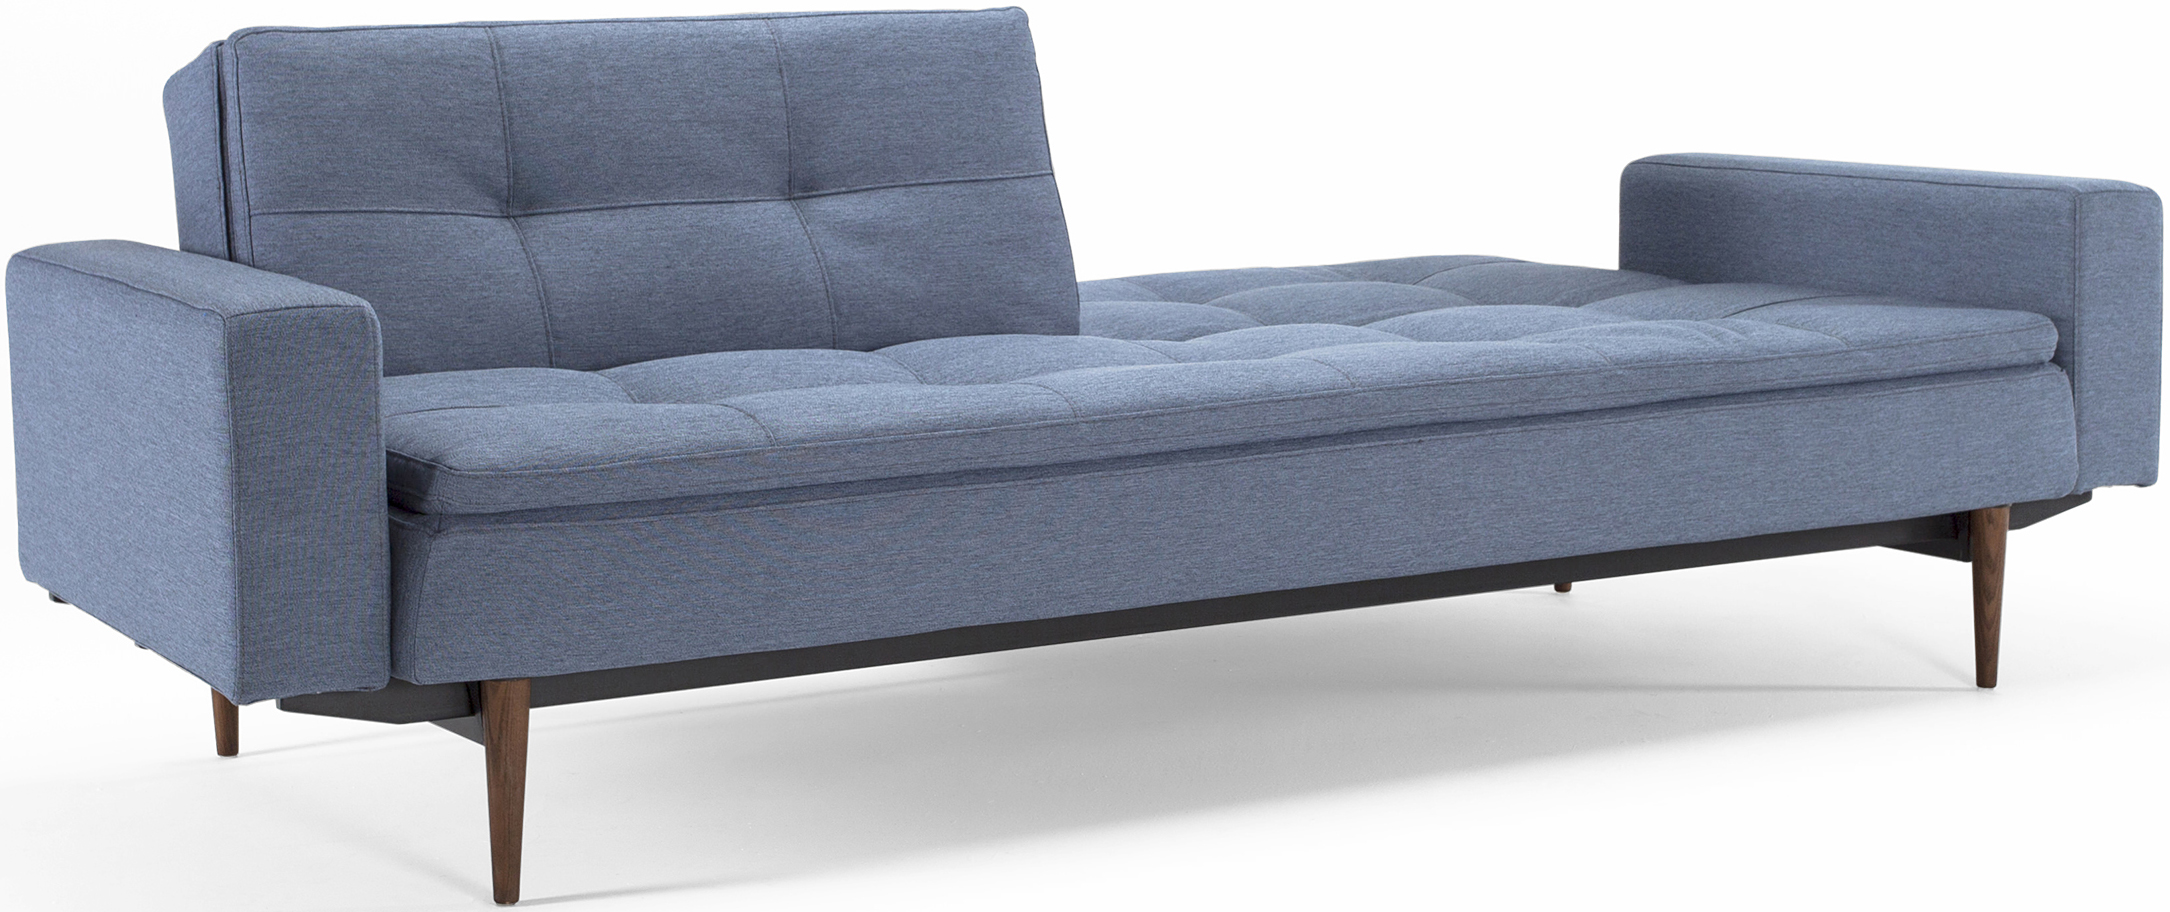 innovation dublexo sofa